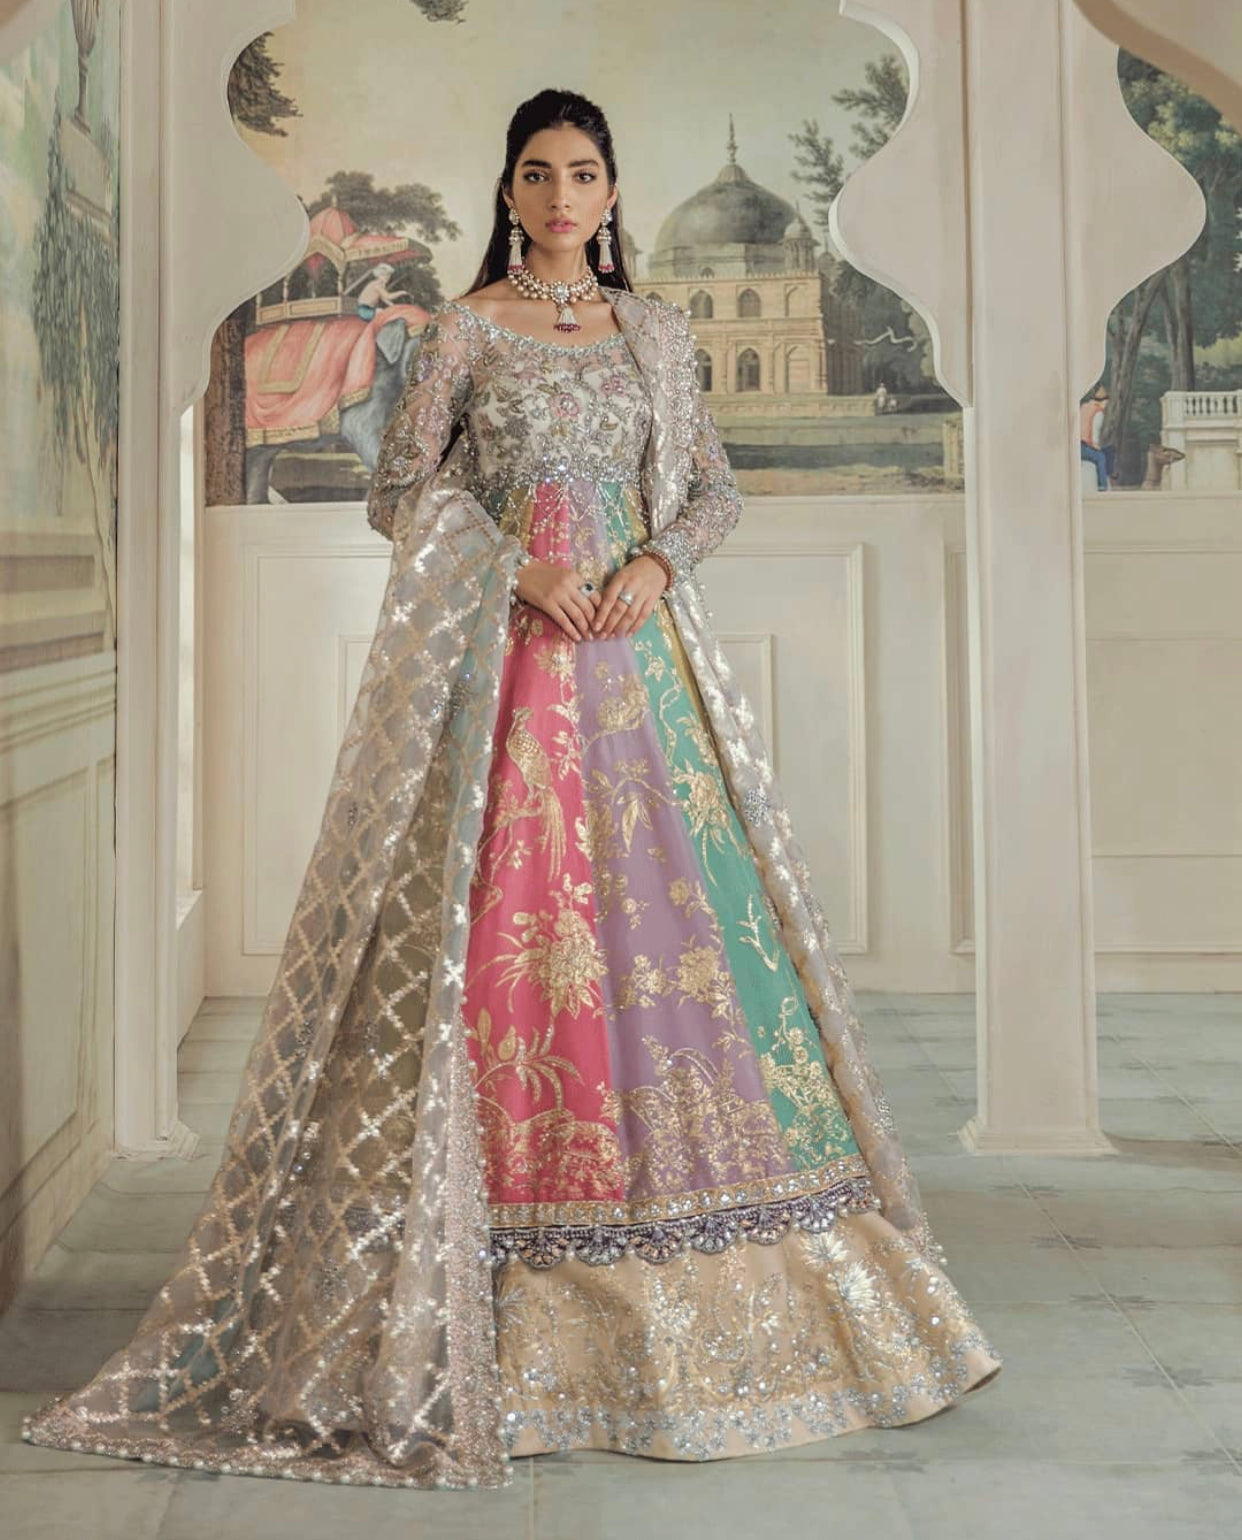 Buy Designer pakistani suits London Uk, Indian and pakistani suits online. Lebaasonline is the largest stockiest of pakistani  suits in wholesale price. Shop designer pakistani suits design and pakistani lehenga choli designs 2020, palazzos pakistani suits and kurtis online pakistani suits bridal pakistani bridal suits online pakistani clothing bridal pakistani bridal clothing brands pakistani bridal anarkali suits buy Pakistani suits buy pakistani suits online pakistani wedding suits sharara gharara pakistani wedding suits uk pakistani wedding suits online uk pakistani suits wedding pakistani wedding suits online pakistani suits with code